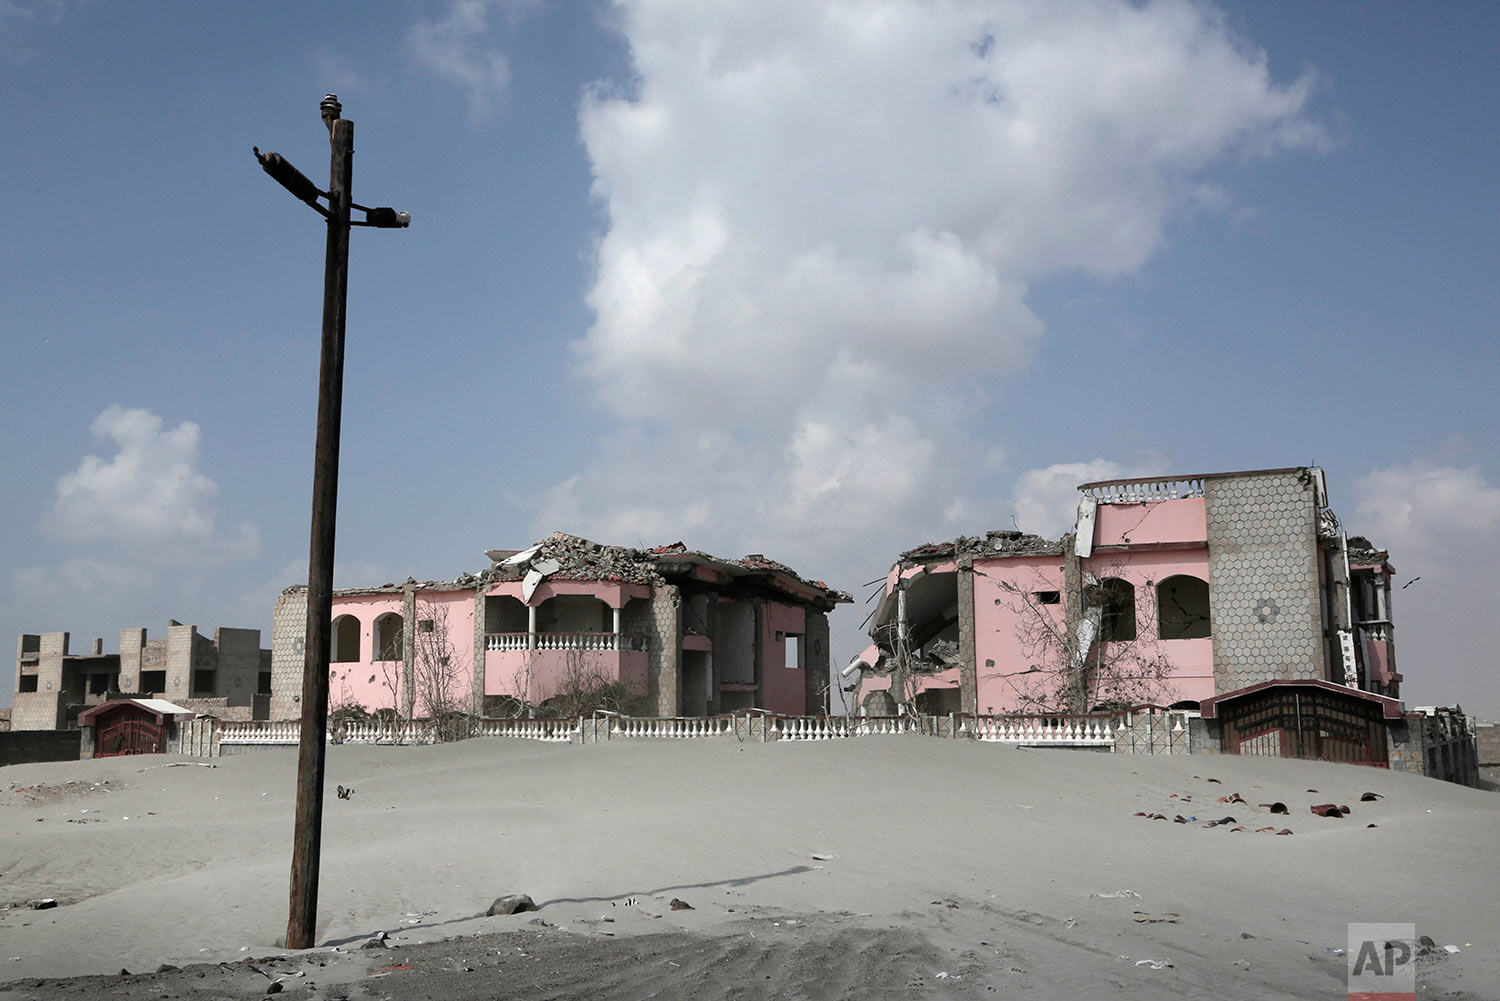 Damaged property due to the war in Abyan, Yemen. (AP Photo/Nariman El-Mofty)